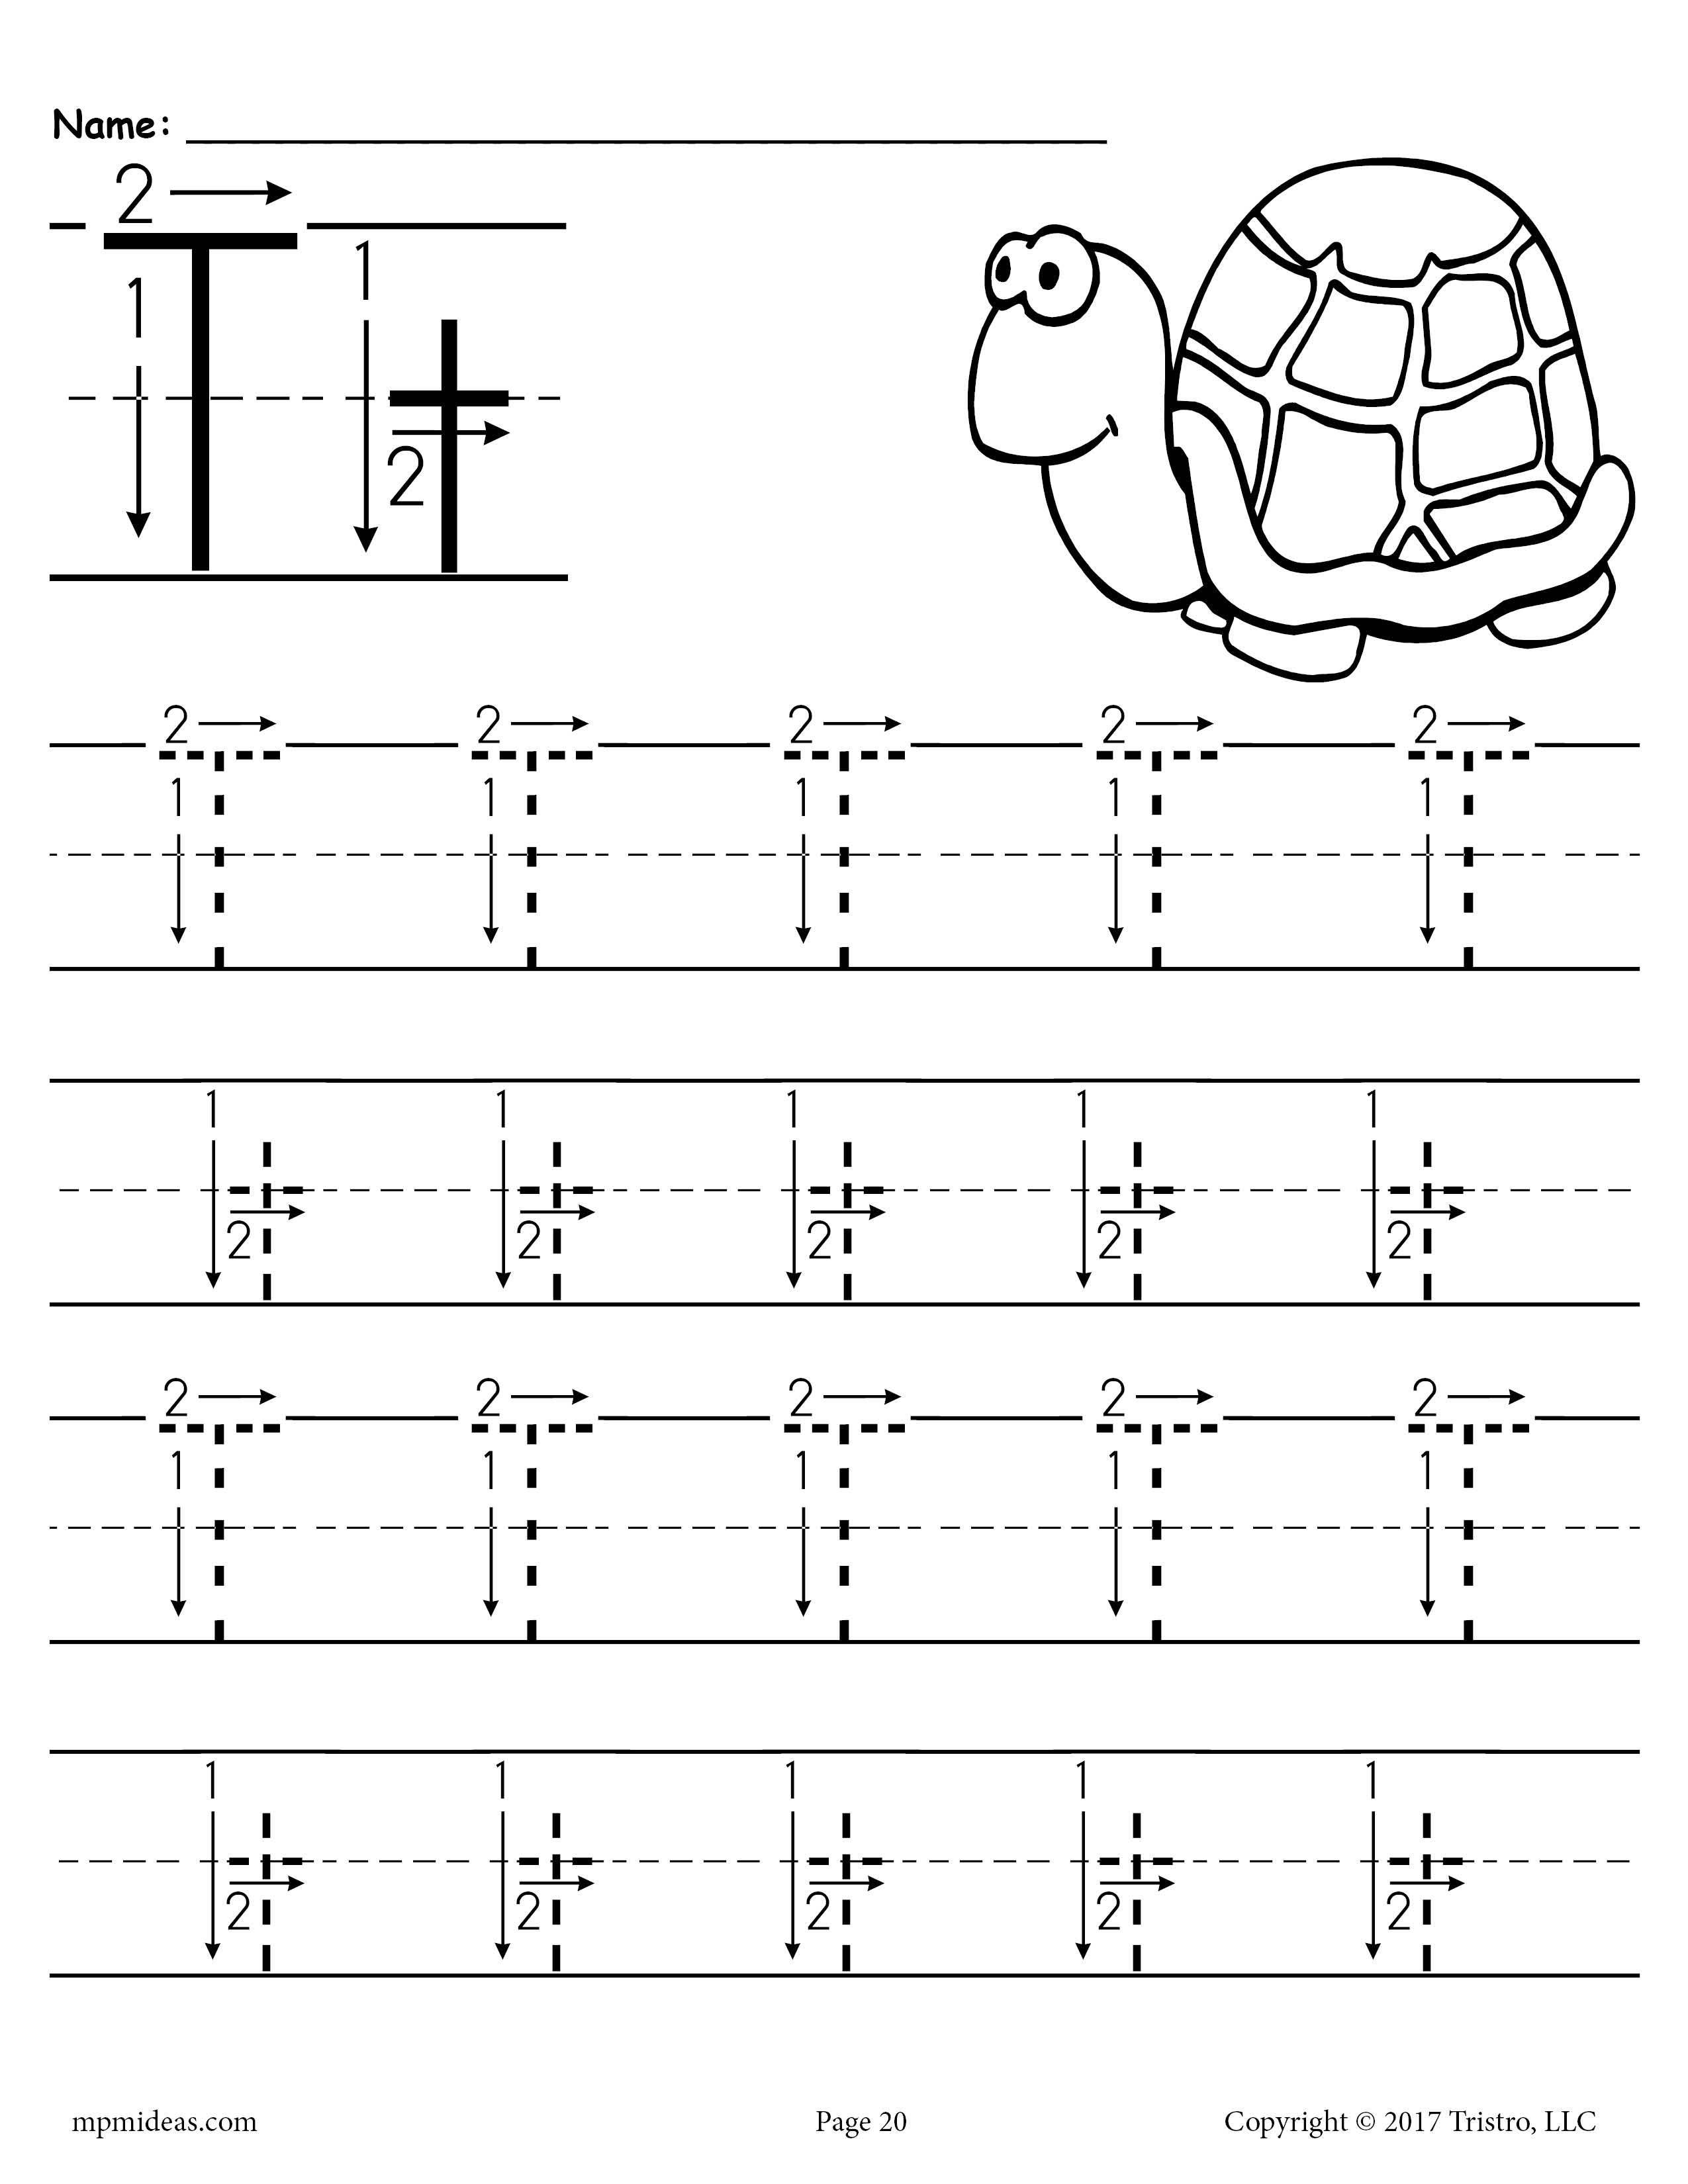 Printable Letter T Tracing Worksheet With Number And Arrow Guides Letter T Worksheets Free Handwriting Worksheets Handwriting Worksheets For Kindergarten [ 3300 x 2550 Pixel ]